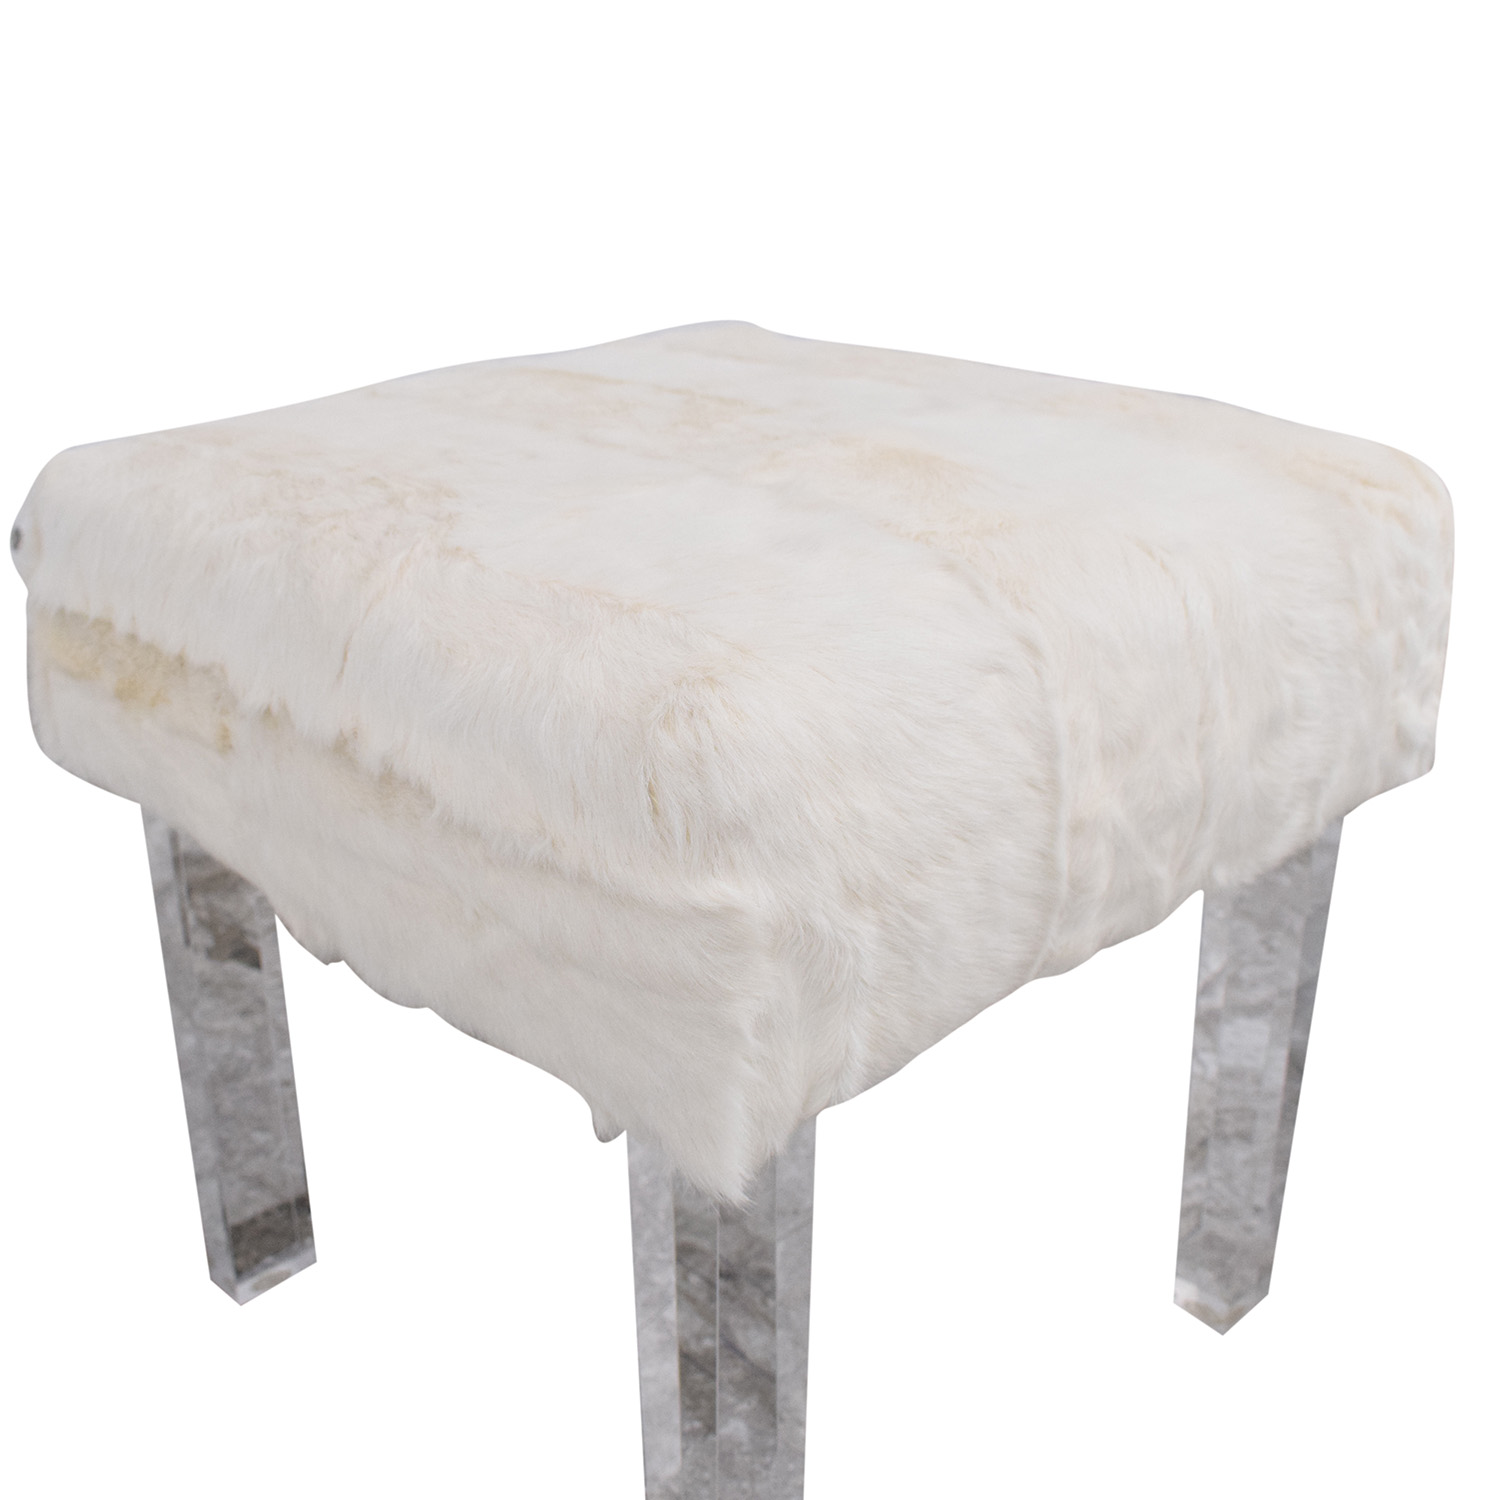 Outpost Original Outpost Original Lucite Bench with Kid Plate price